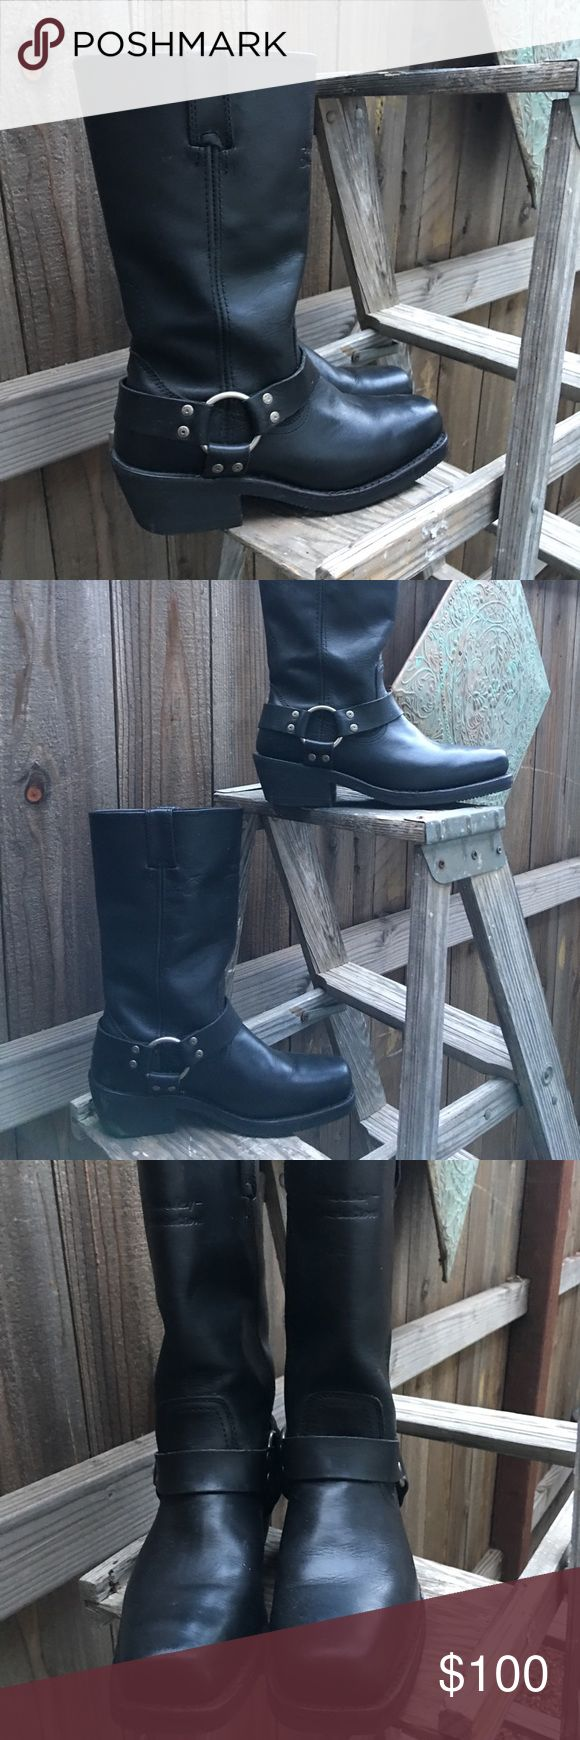 """Harley Davidson 11"""" harness riding boots Fantastic pair of Harley Davidson Hustin black harness riding boots, 11"""" shaft, pull on, square toe,Harley imprint on the front, very little wear. Overall great condition. Sz.8 Harley-Davidson Shoes Combat & Moto Boots #harleydavidsonboots"""